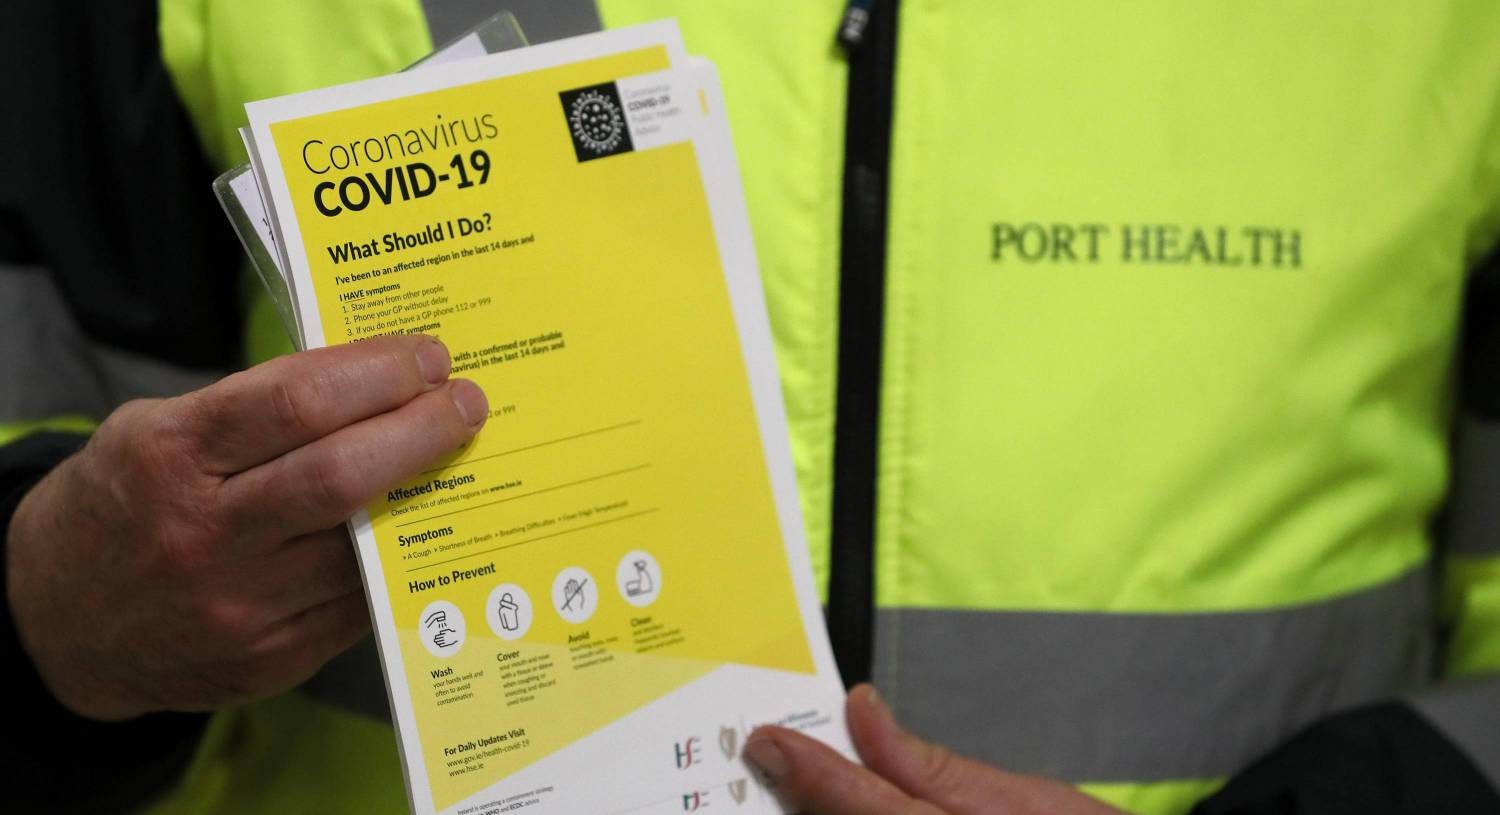 Dublin the worst hit by Covid-19, figures show